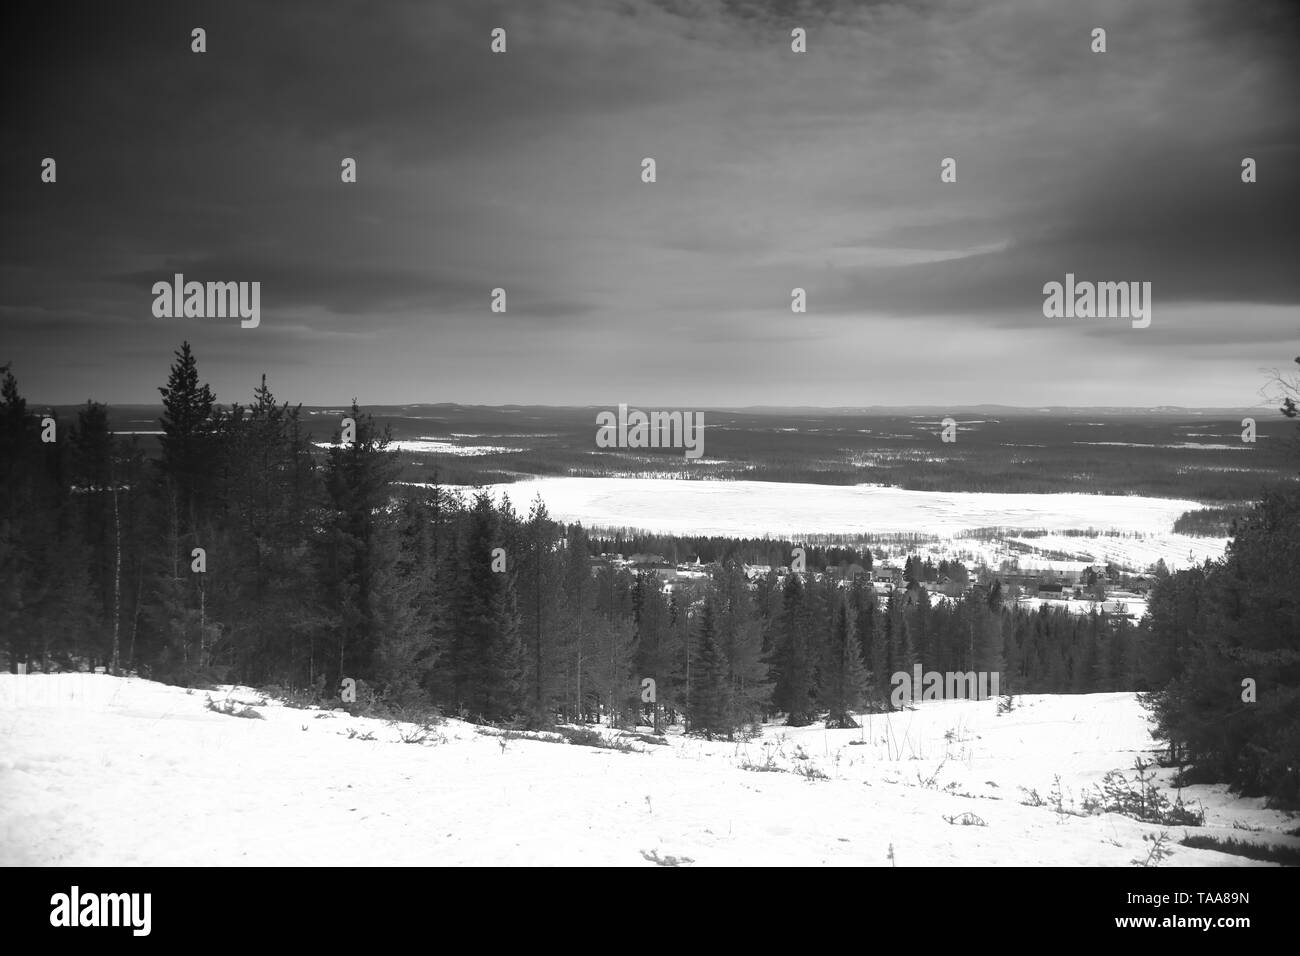 Old-fashioned black and white photo from Mount Glommersberget near Glommerstrask in Lapland, Sweden. - Stock Image